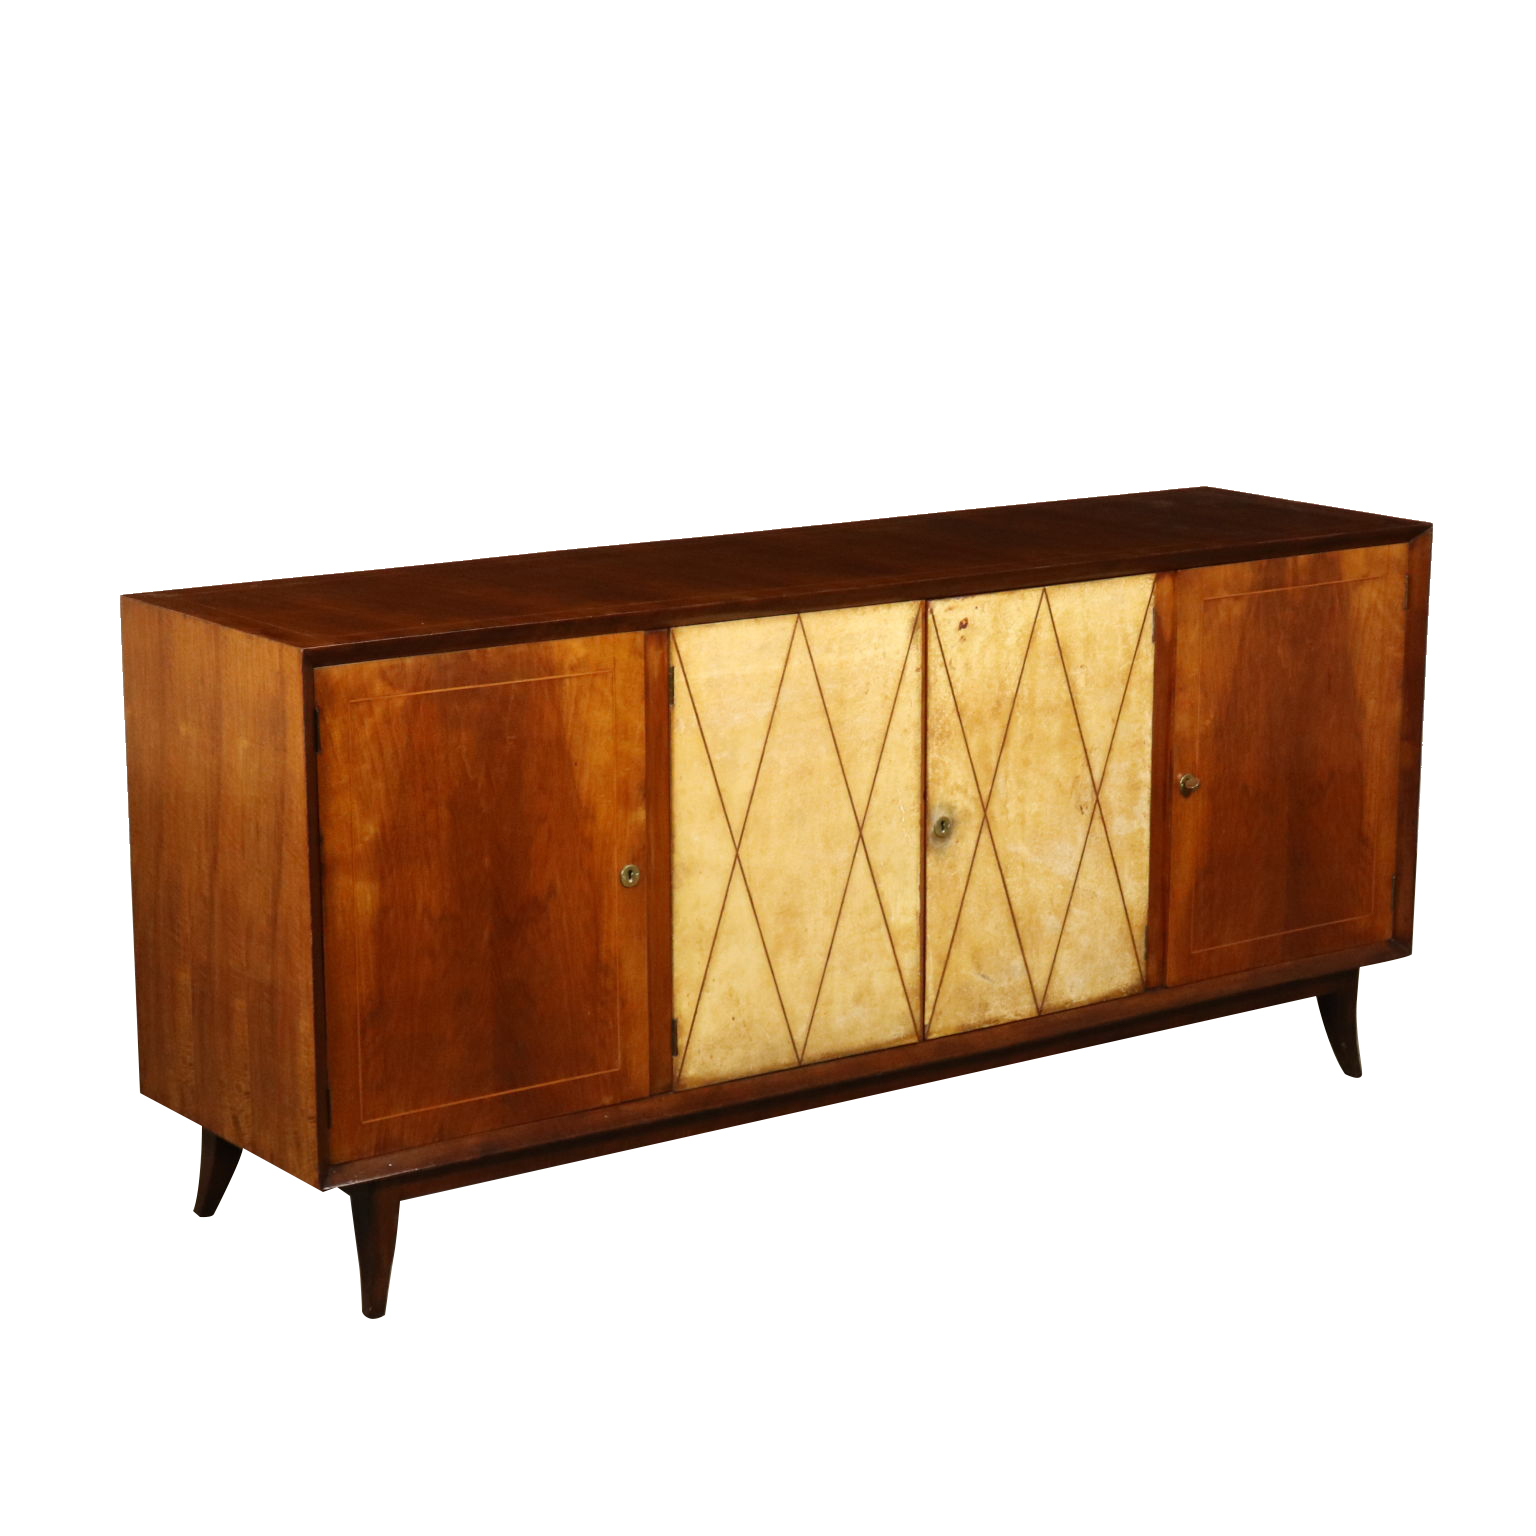 Cabinet Italia 1930 -  Cabinet Made in Italy 1930